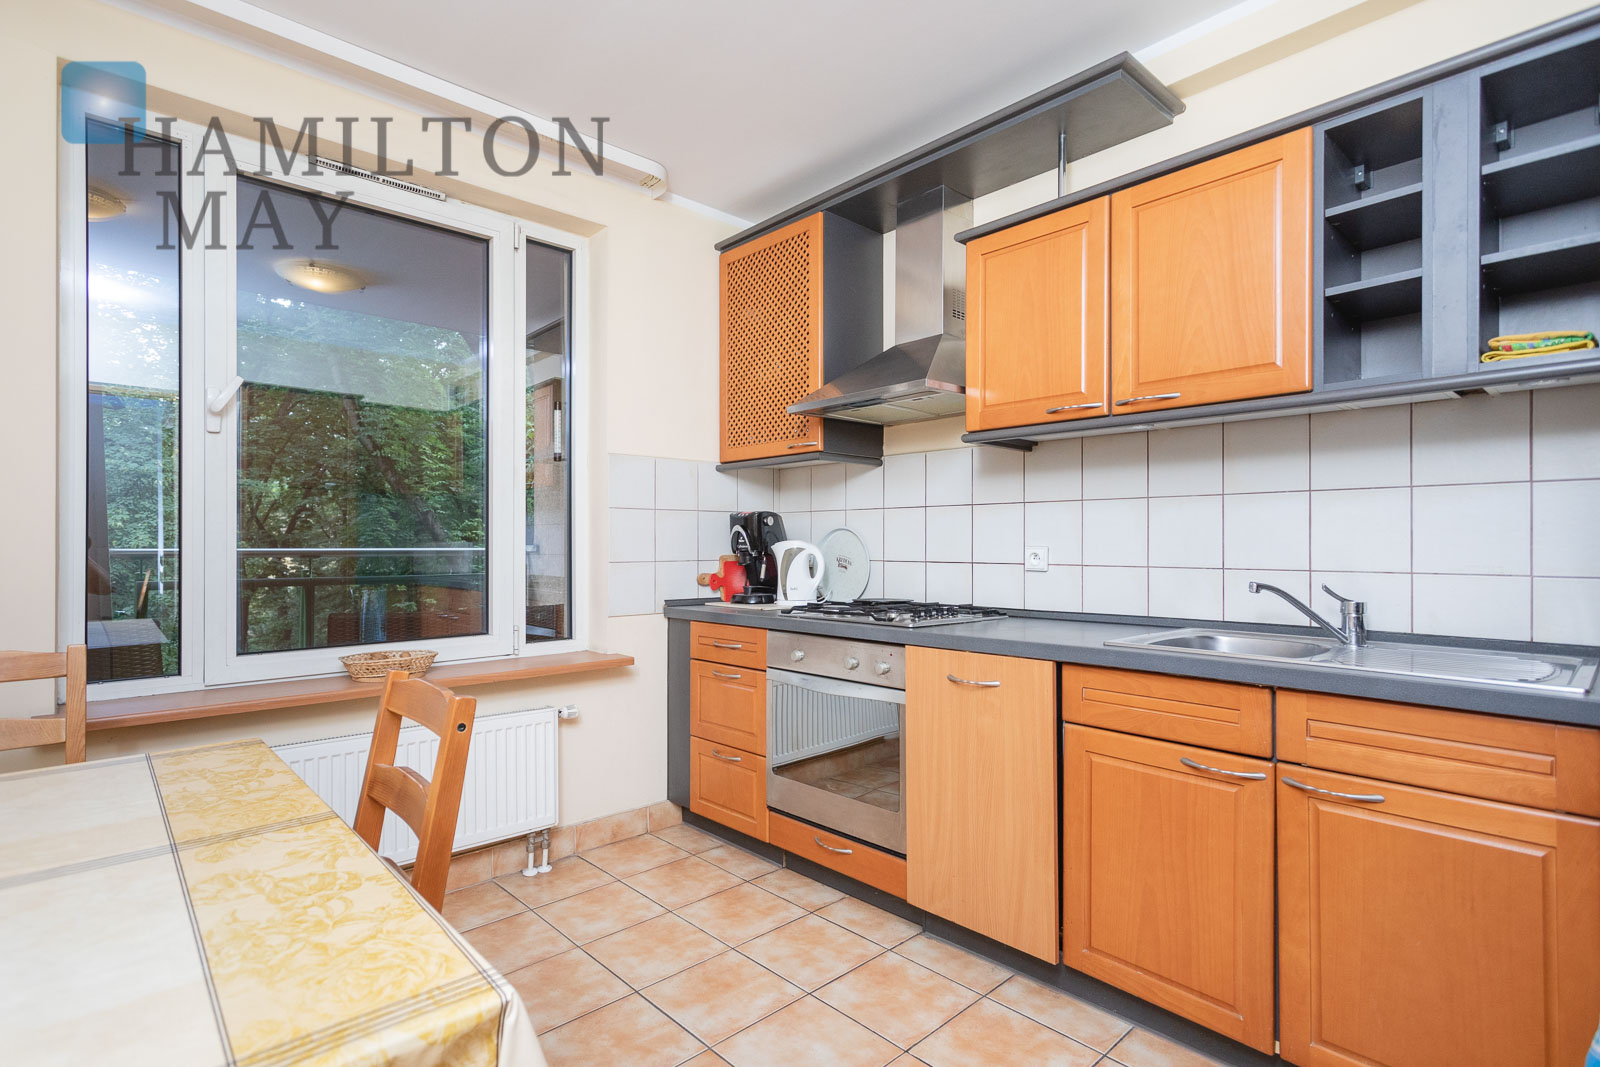 A three-room apartment in an apartment building in the Old Town Krakow for sale